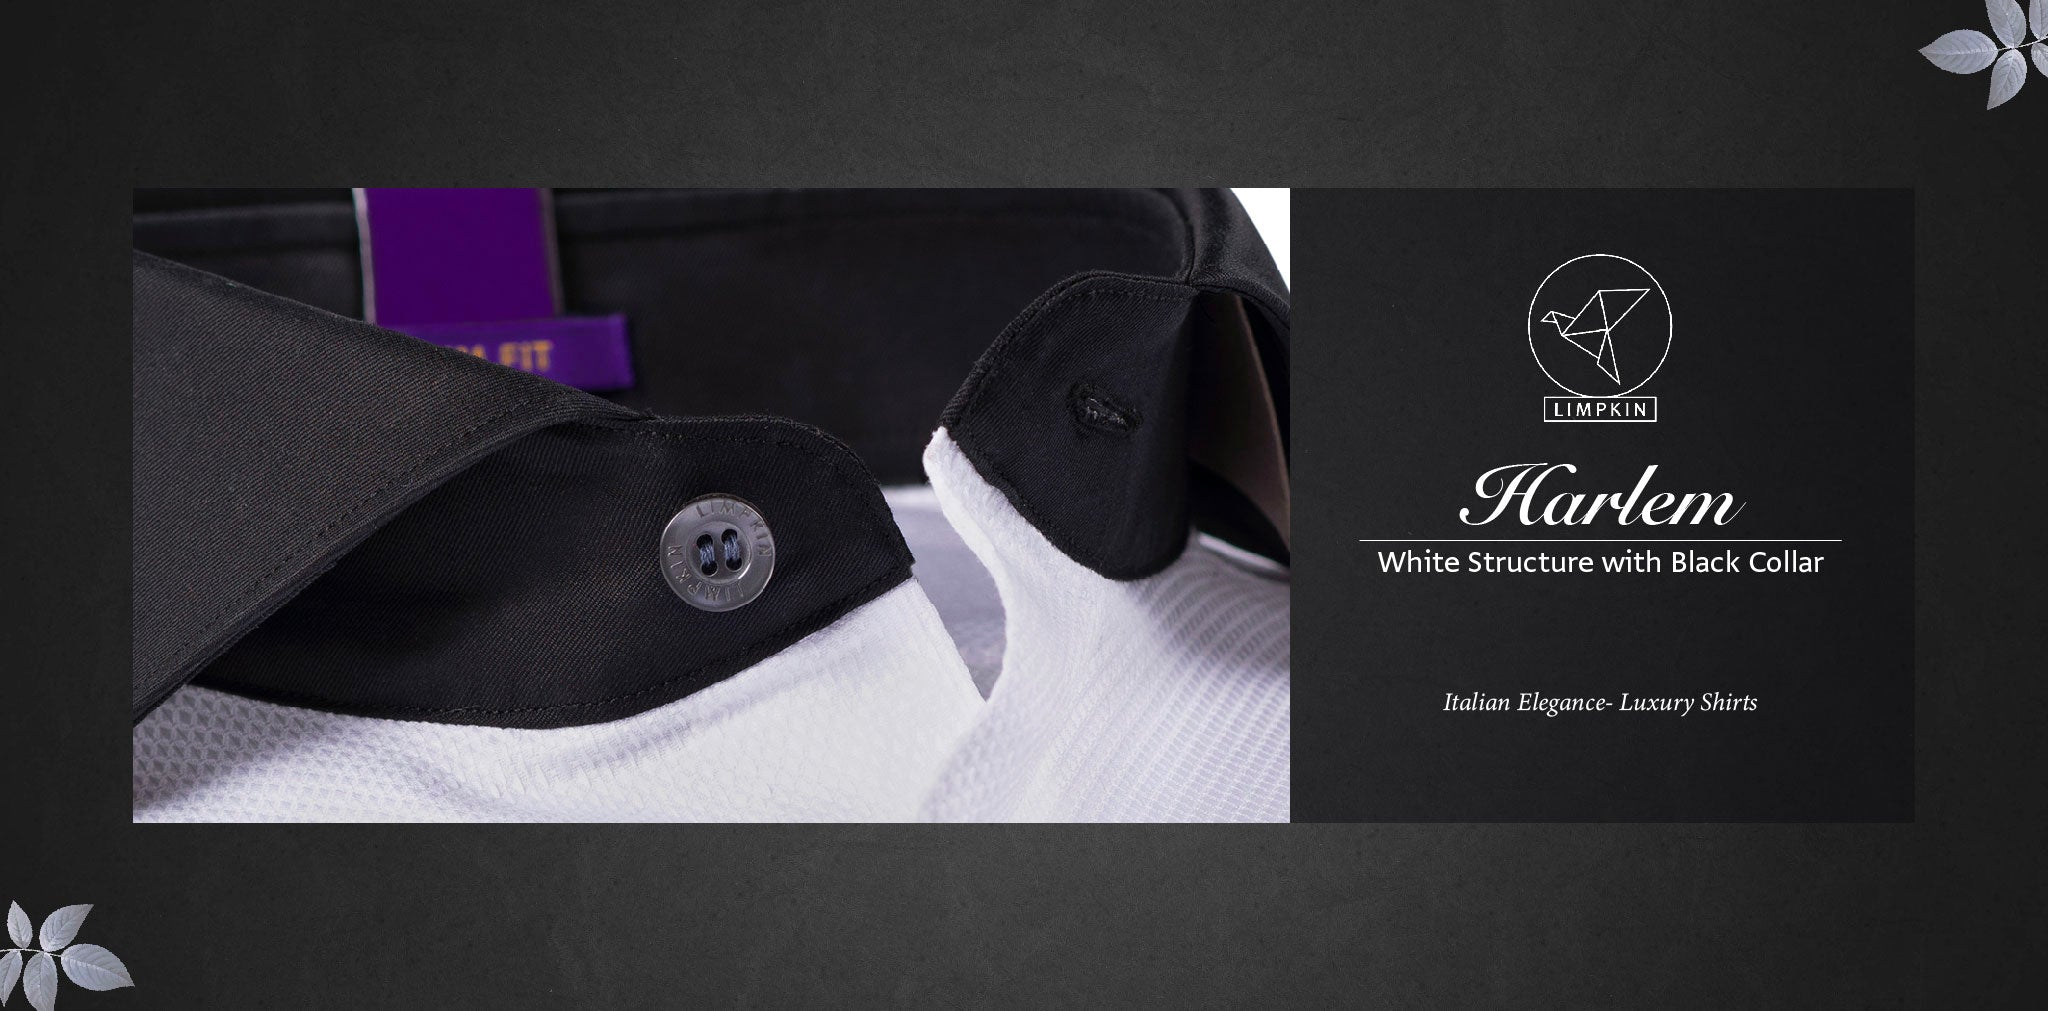 Harlem- White Structure with Black Collar- 2 Ply Pure Egyptian Giza Cotton- Delivery from 20th Oct - Banner